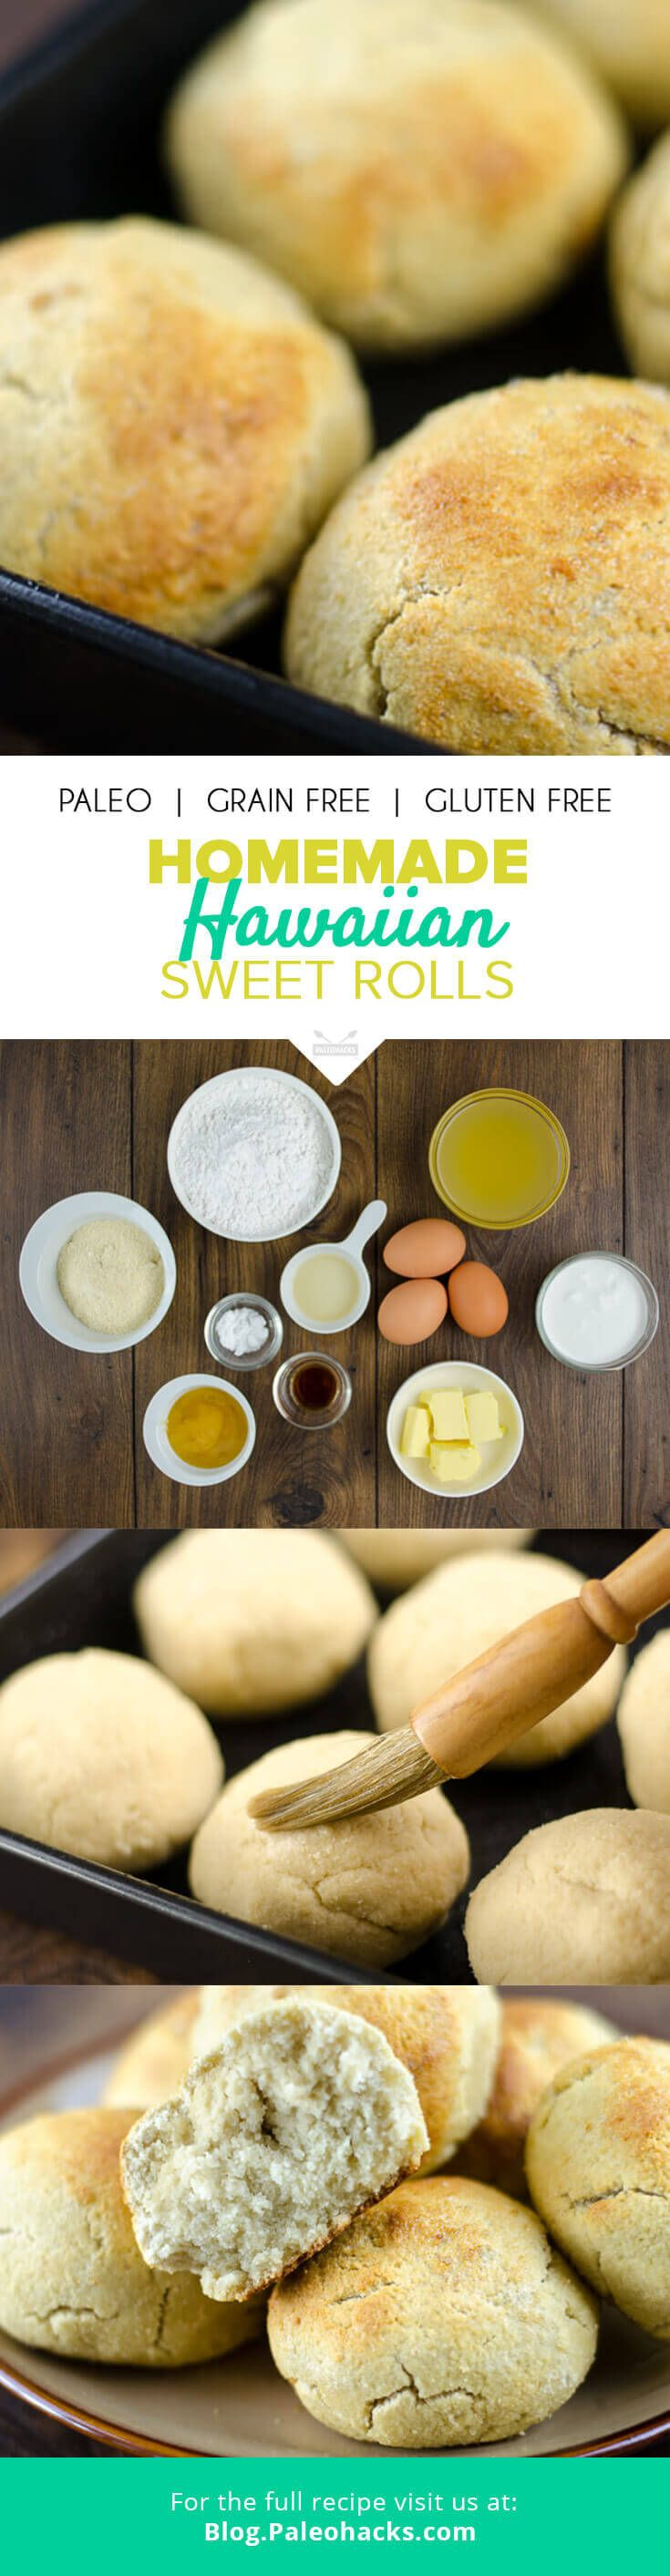 There is nothing quite like the aroma of freshly baked bread. This Paleo version of warm Hawaiian sweet rolls is naturally sweetened, dairy-free and super easy to make. For the full recipe, visit us here: http://paleo.co/hawaiianrolls